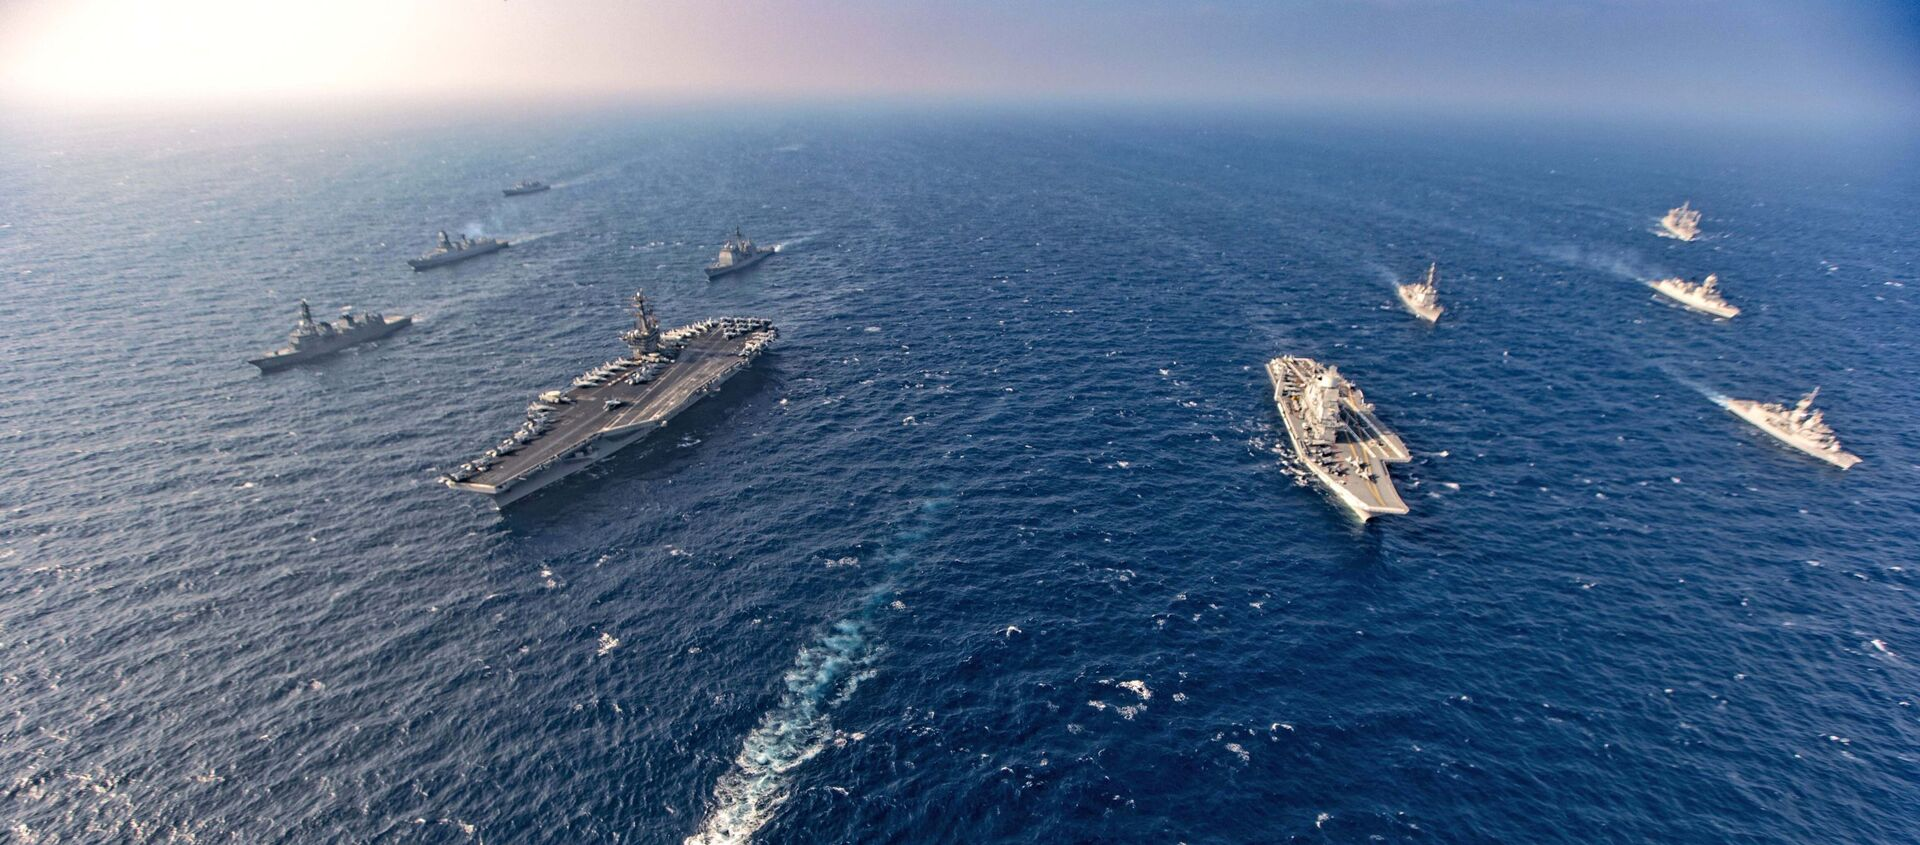 Aircraft carriers and warships participate in the second phase of Malabar naval exercise, a joint exercise comprising of India, US, Japan and Australia, in the Northern Arabian Sea on Tuesday, Nov. 17, 2020. - Sputnik International, 1920, 26.08.2021